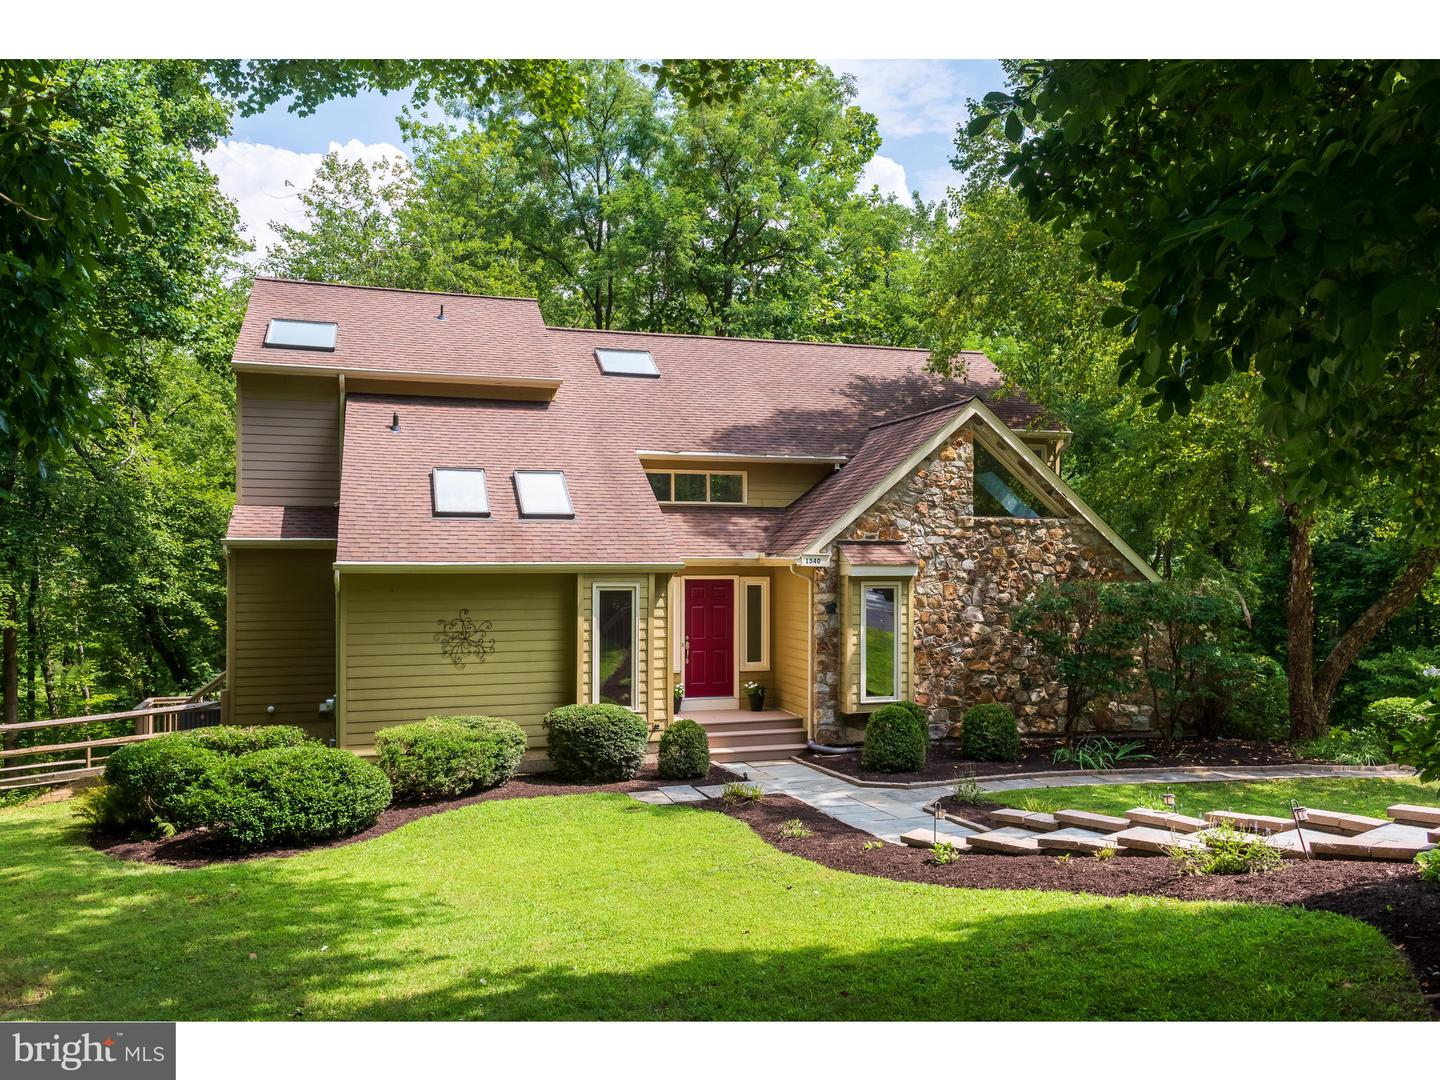 1540 Sleepy Hollow Lane West Chester , PA 19380